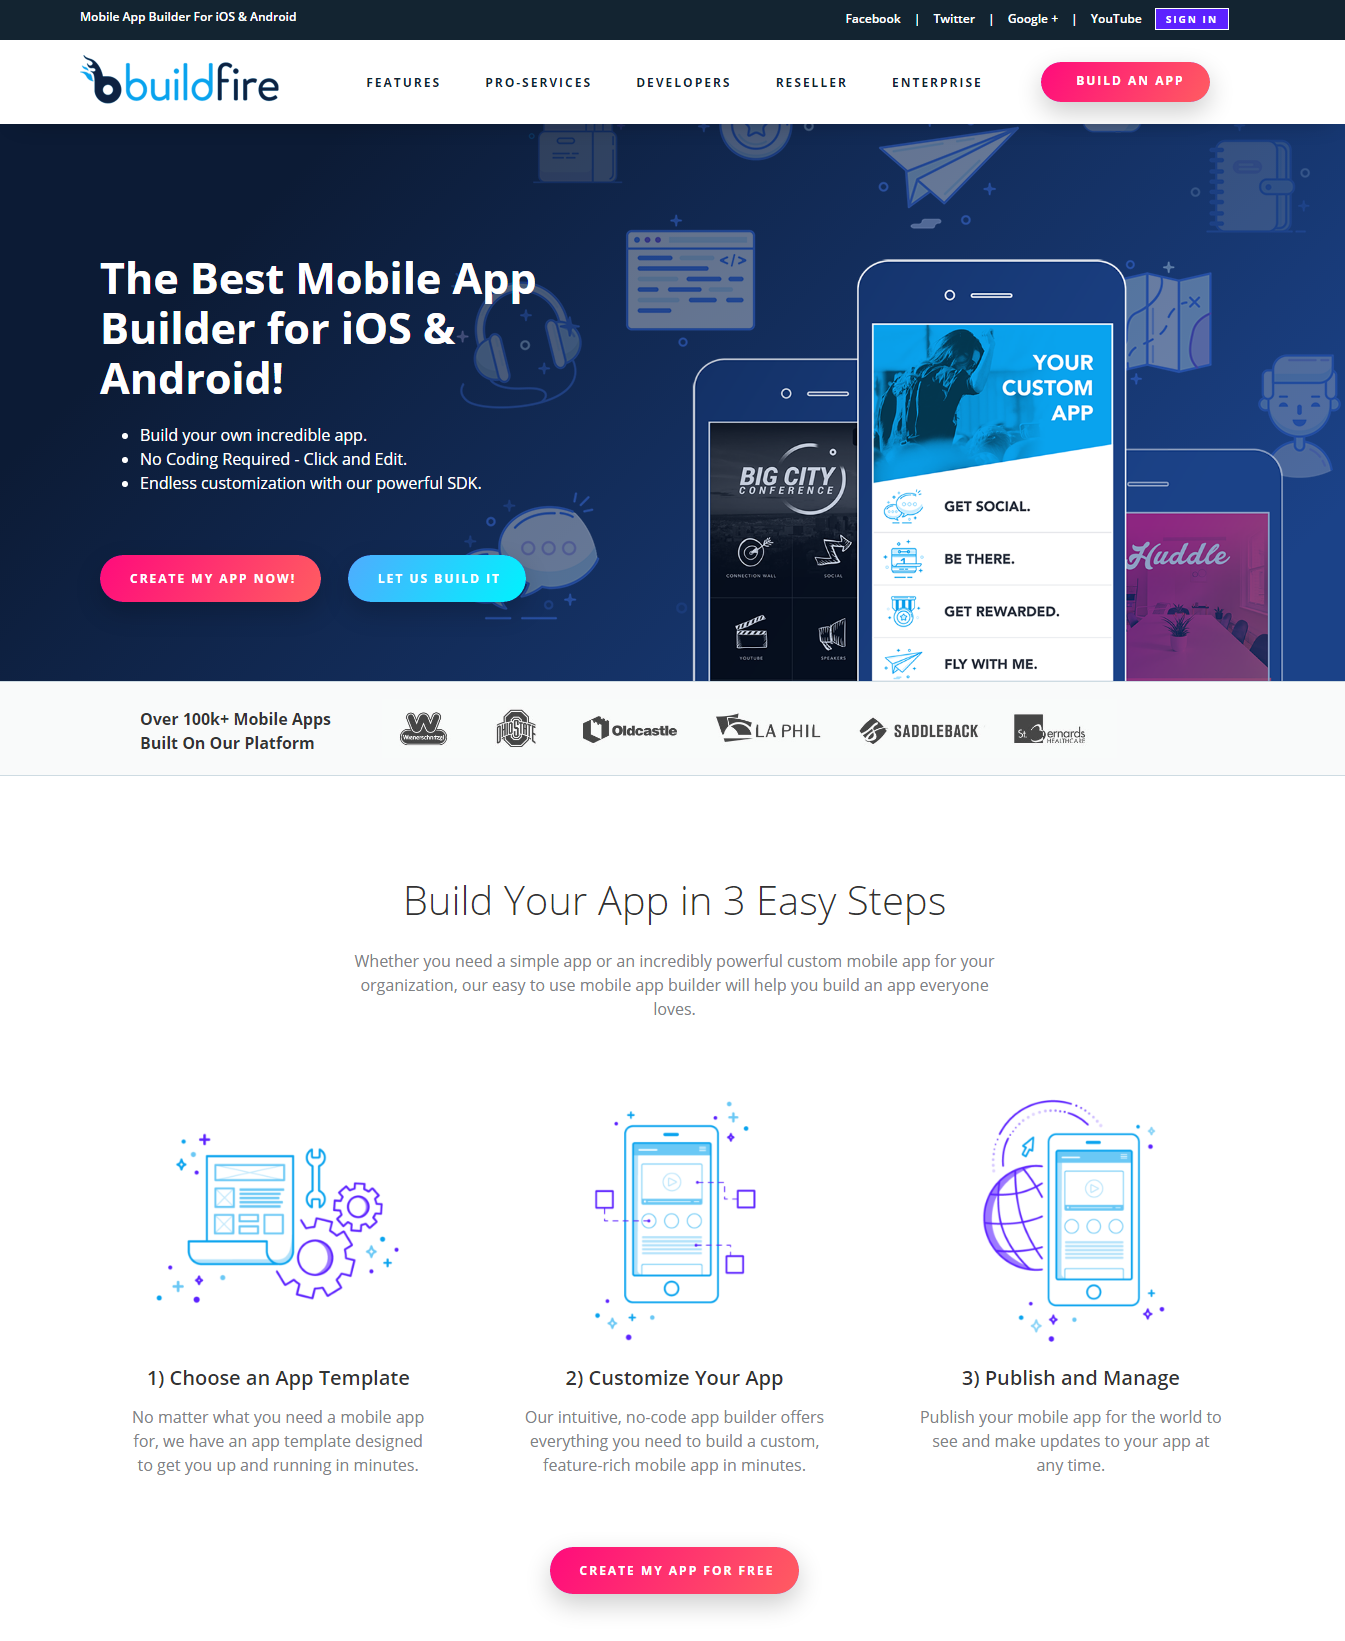 BuildFire - Mobile App Builder For iOS And Android - Flat Design